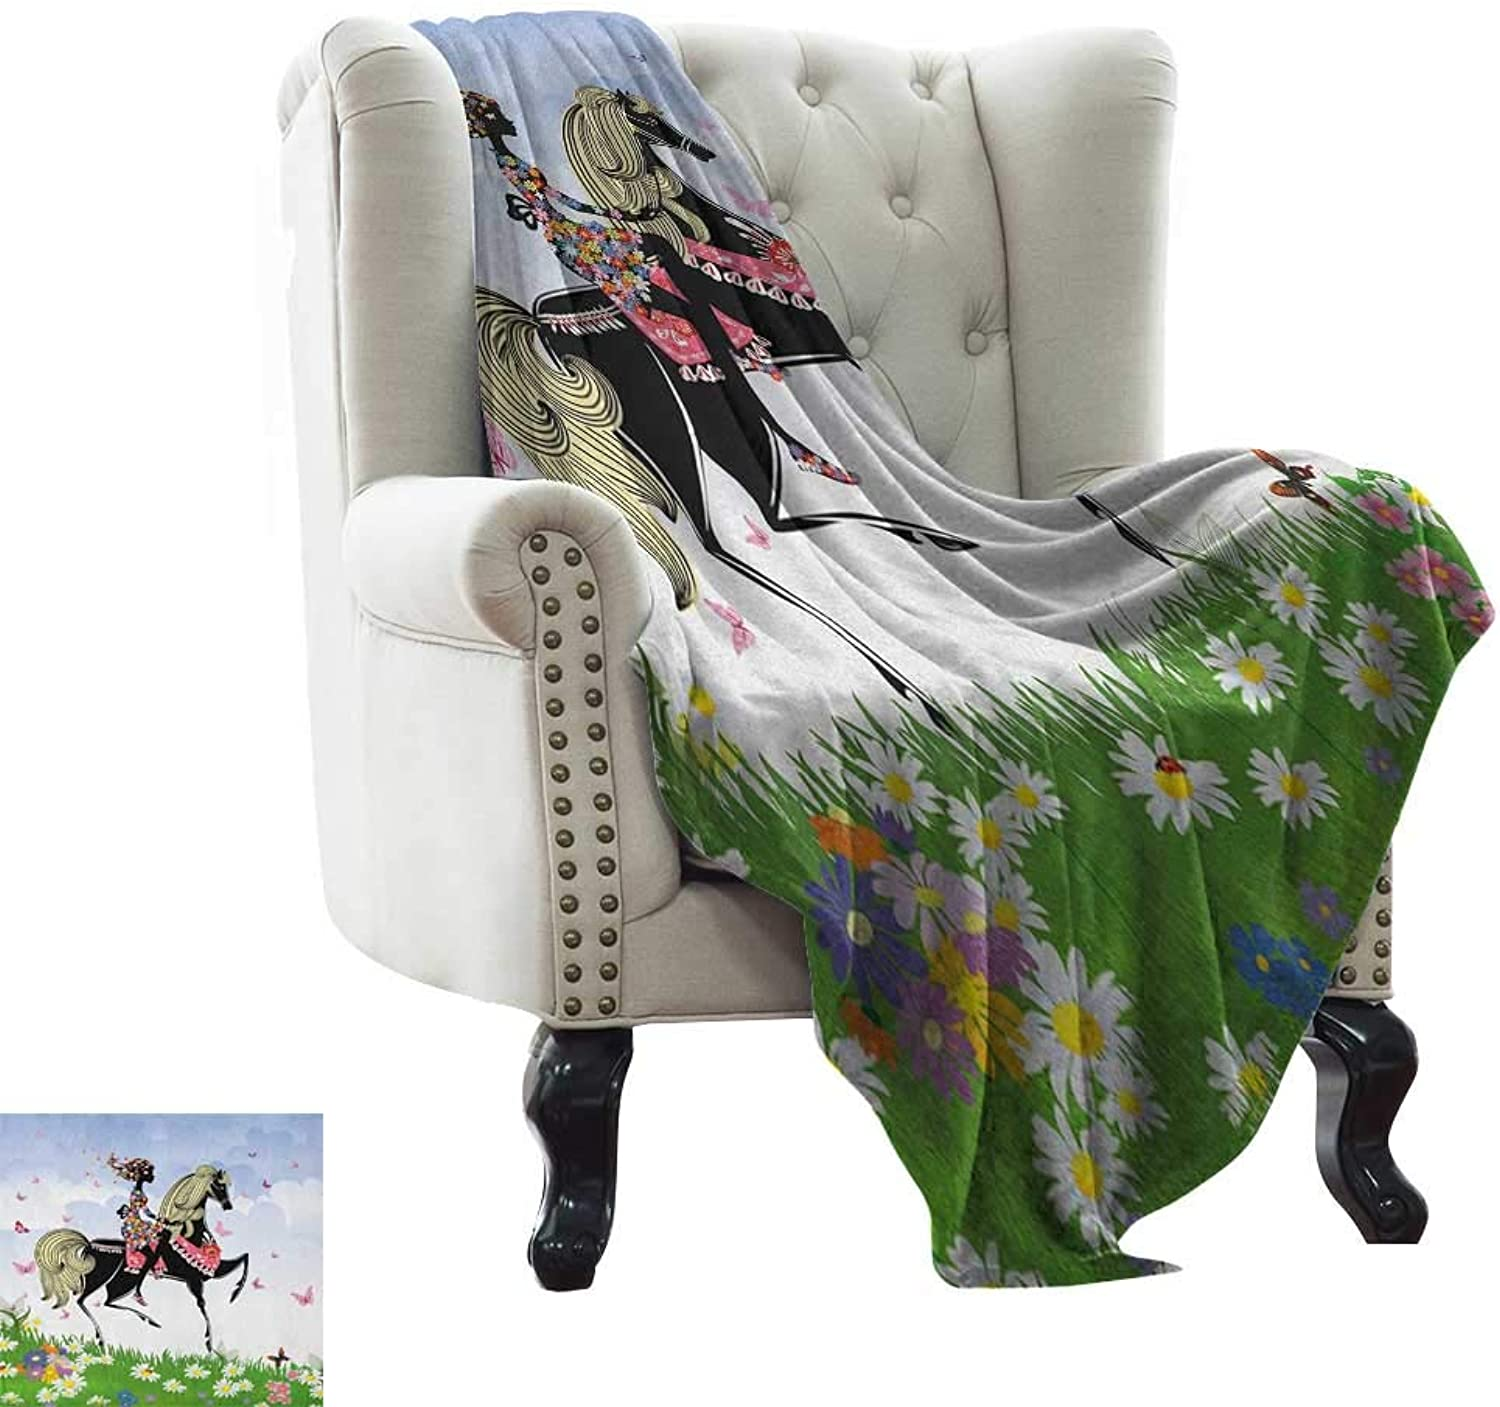 LsWOW Weighted Blanket for Kids Horse Lunarable, Floral Girl Riding Pony in Fantasy Spring Field Butterflies Daisies Girls Room Print, Multicolor colorful,Home,Couch,Outdoor,Travel Use 50 x60